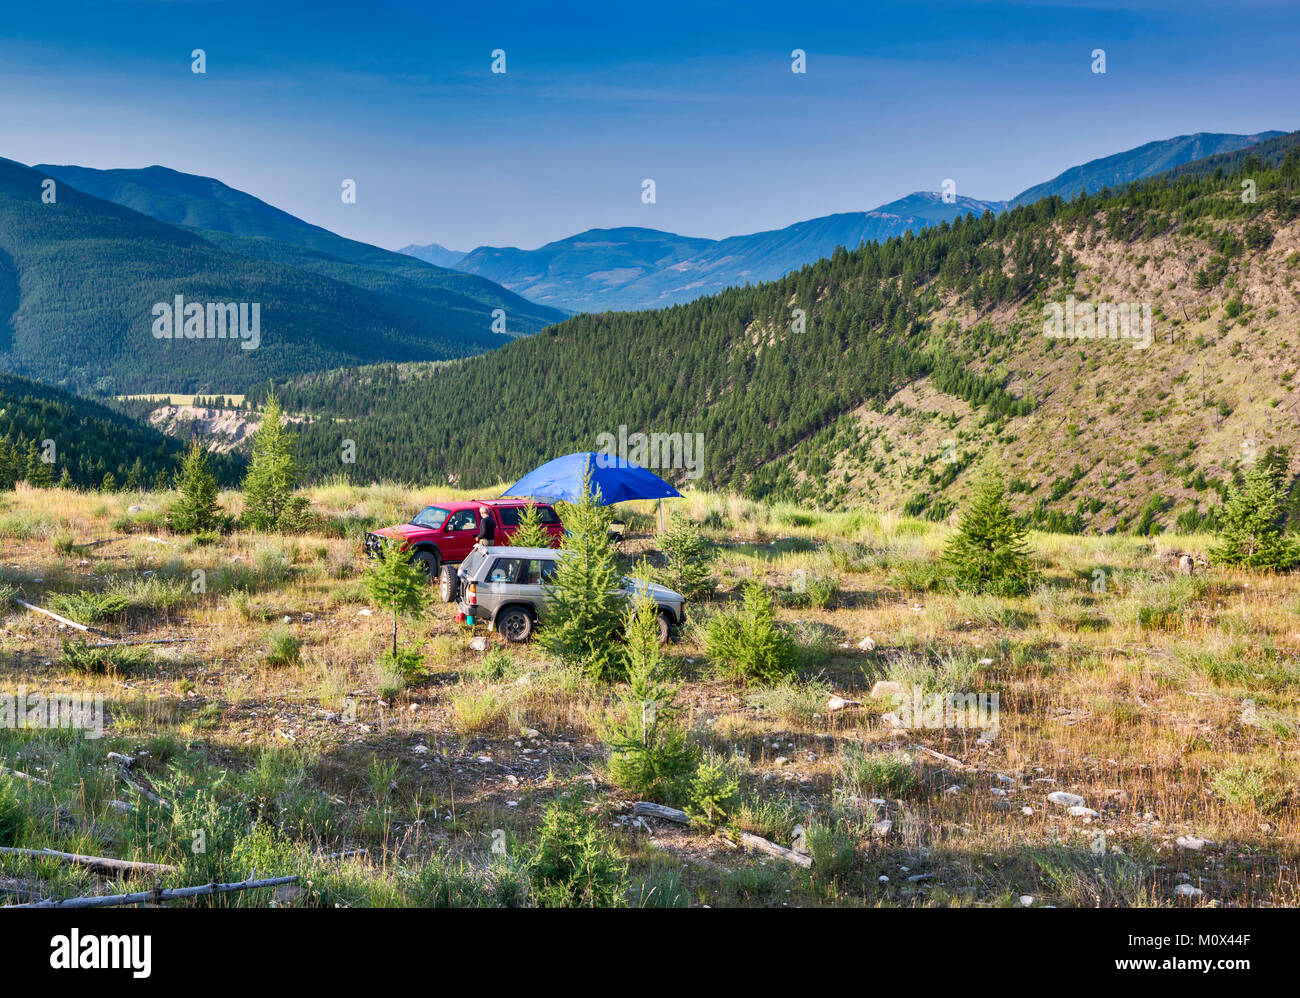 Campsite at Brewer Creek Forest Service Road, Purcell Mountains, near Invermere, British Columbia, Canada - Stock Image